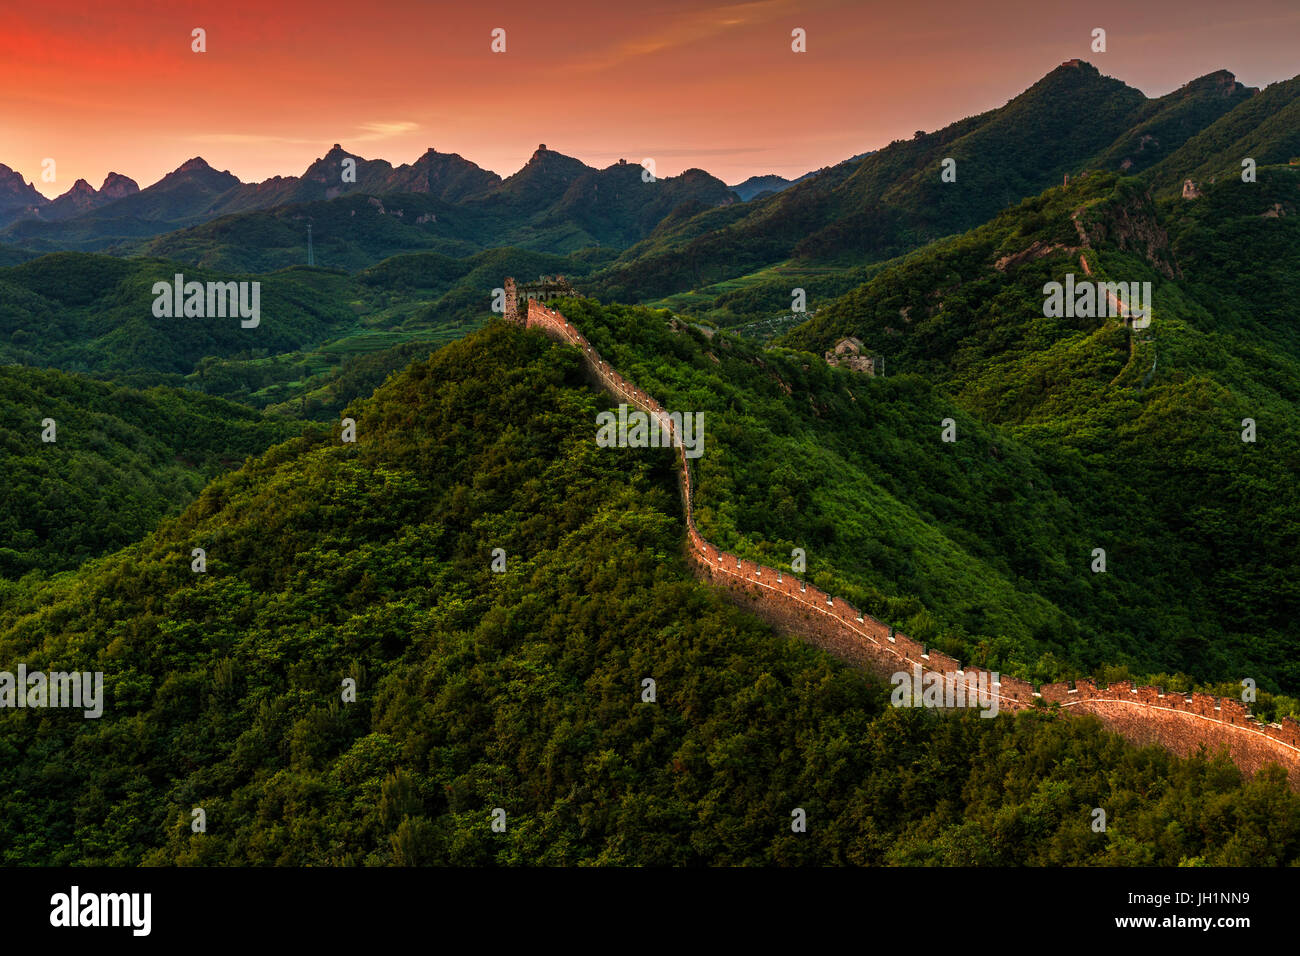 Great wall of China - Stock Image